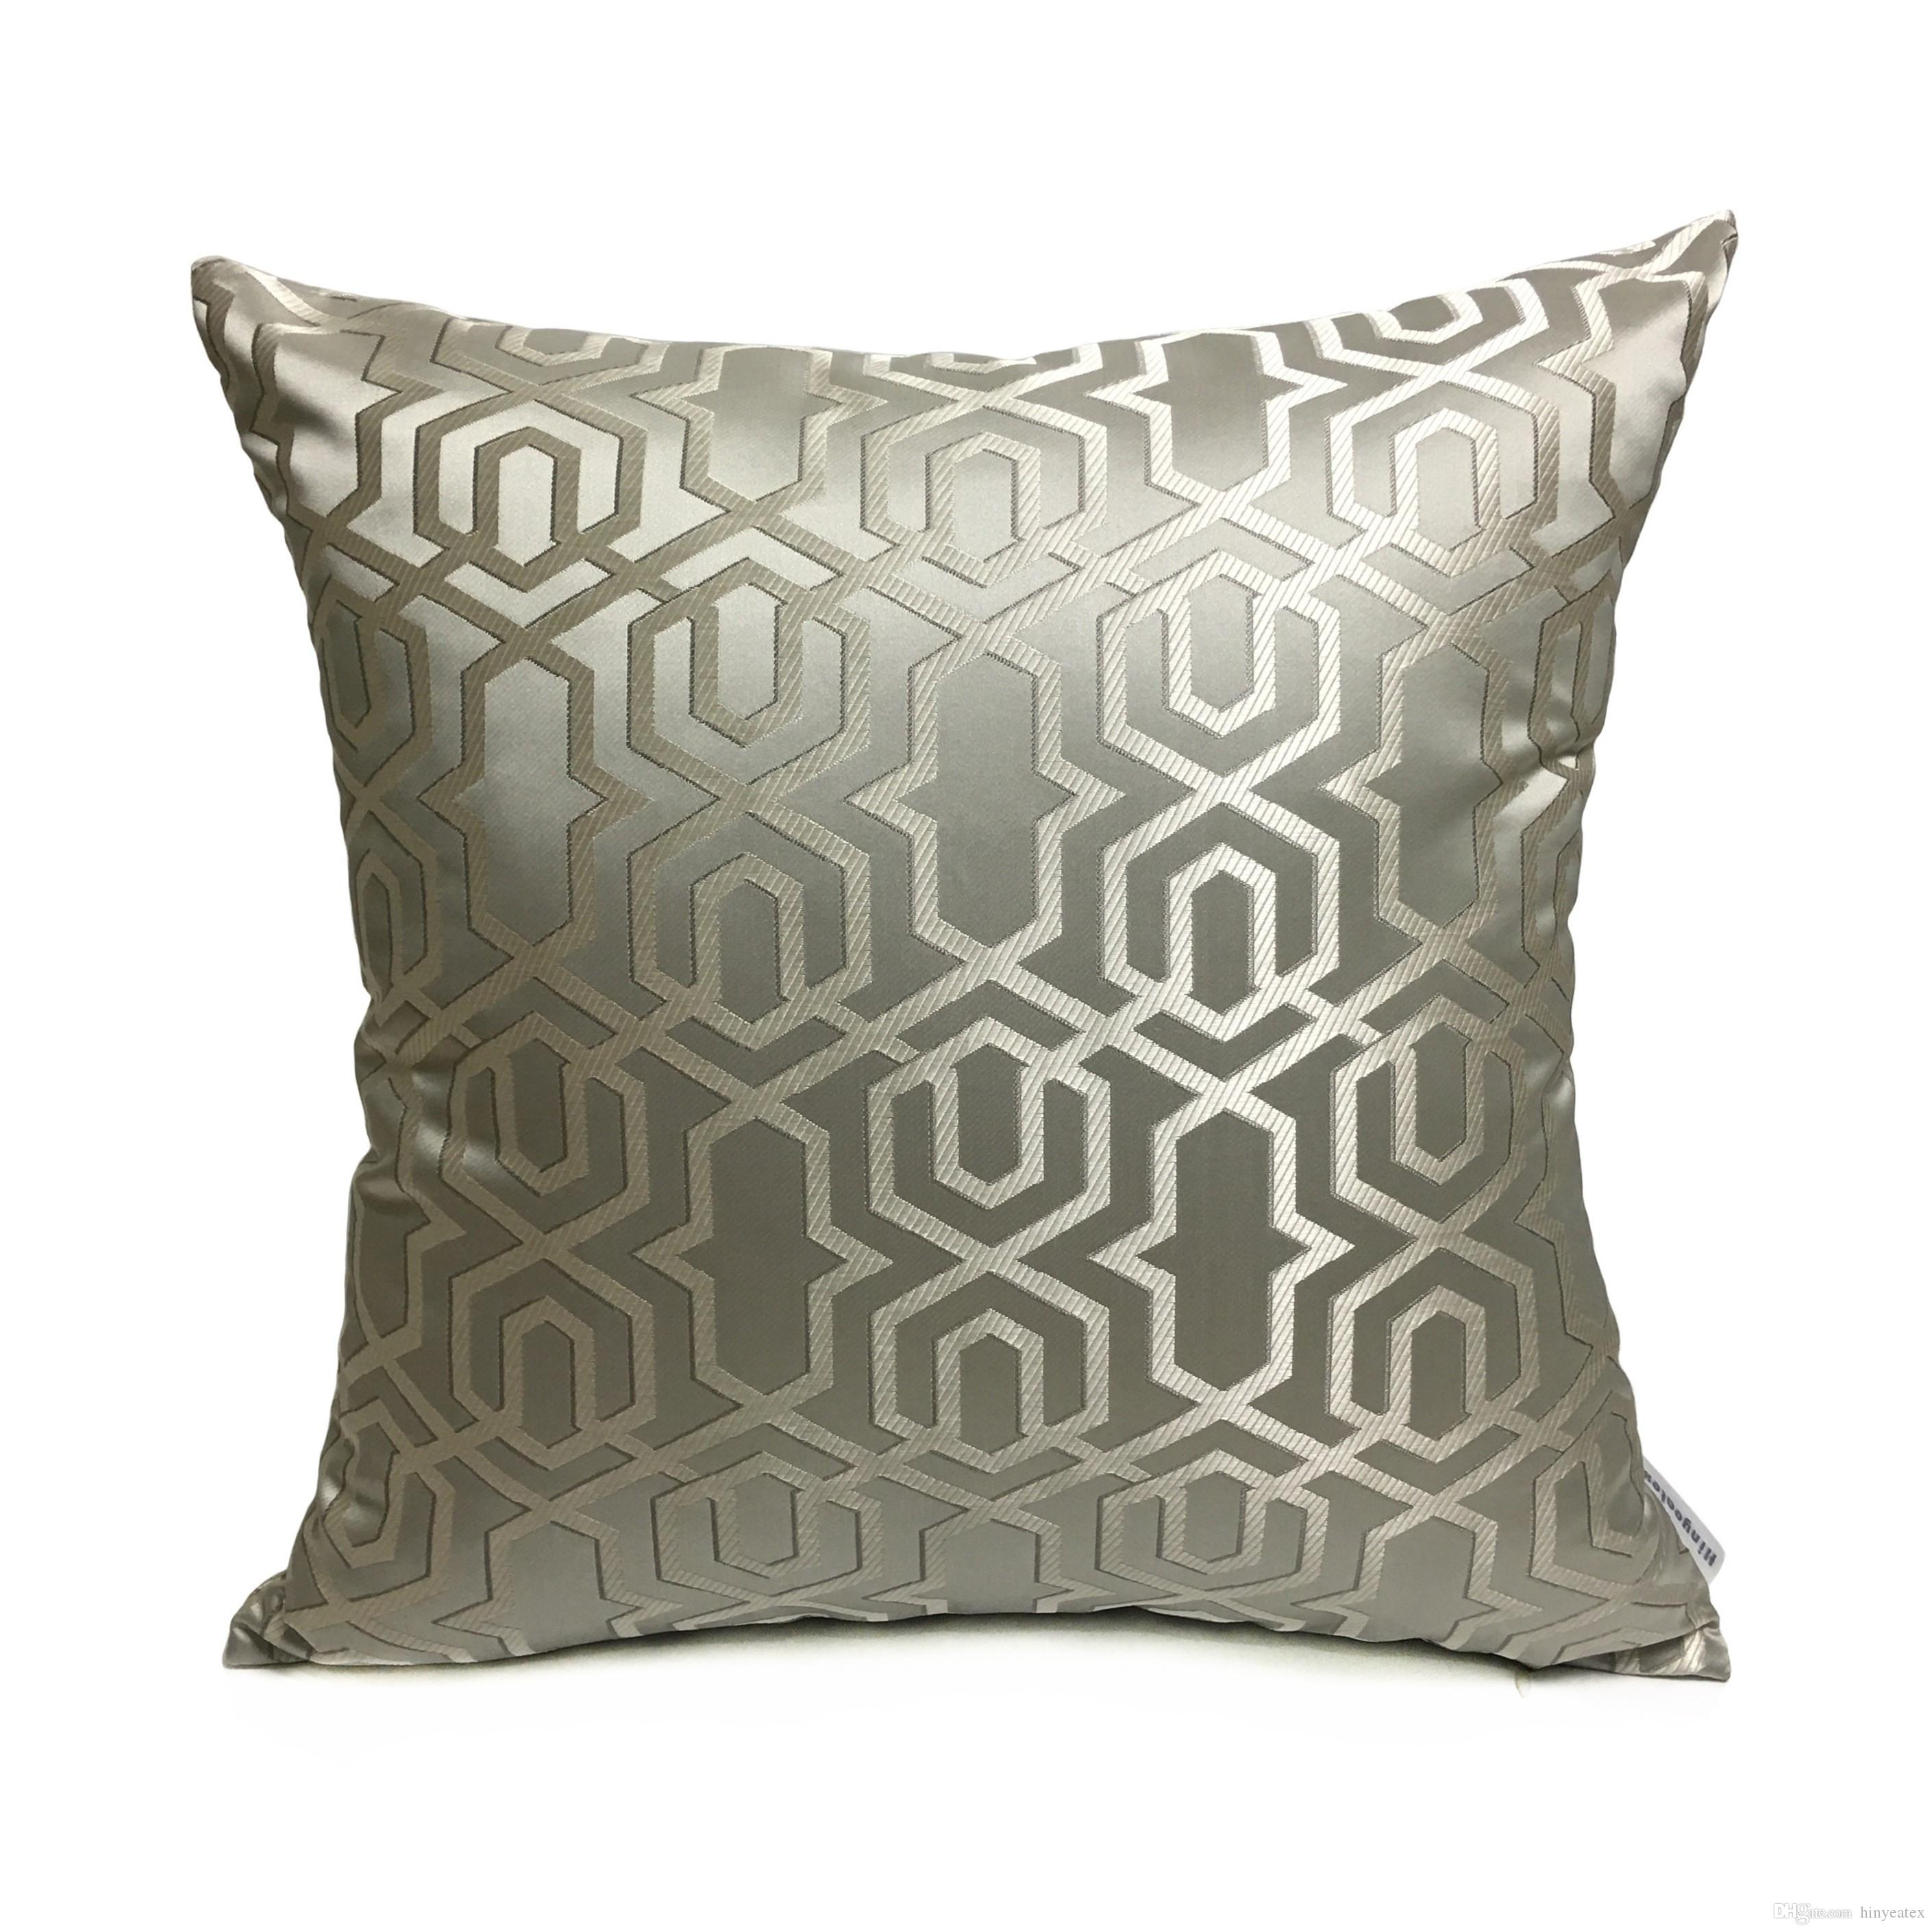 Contemporary Sofa Geometric Pillows: Contemporary Grey Geometric Throw Pillow Case Modern